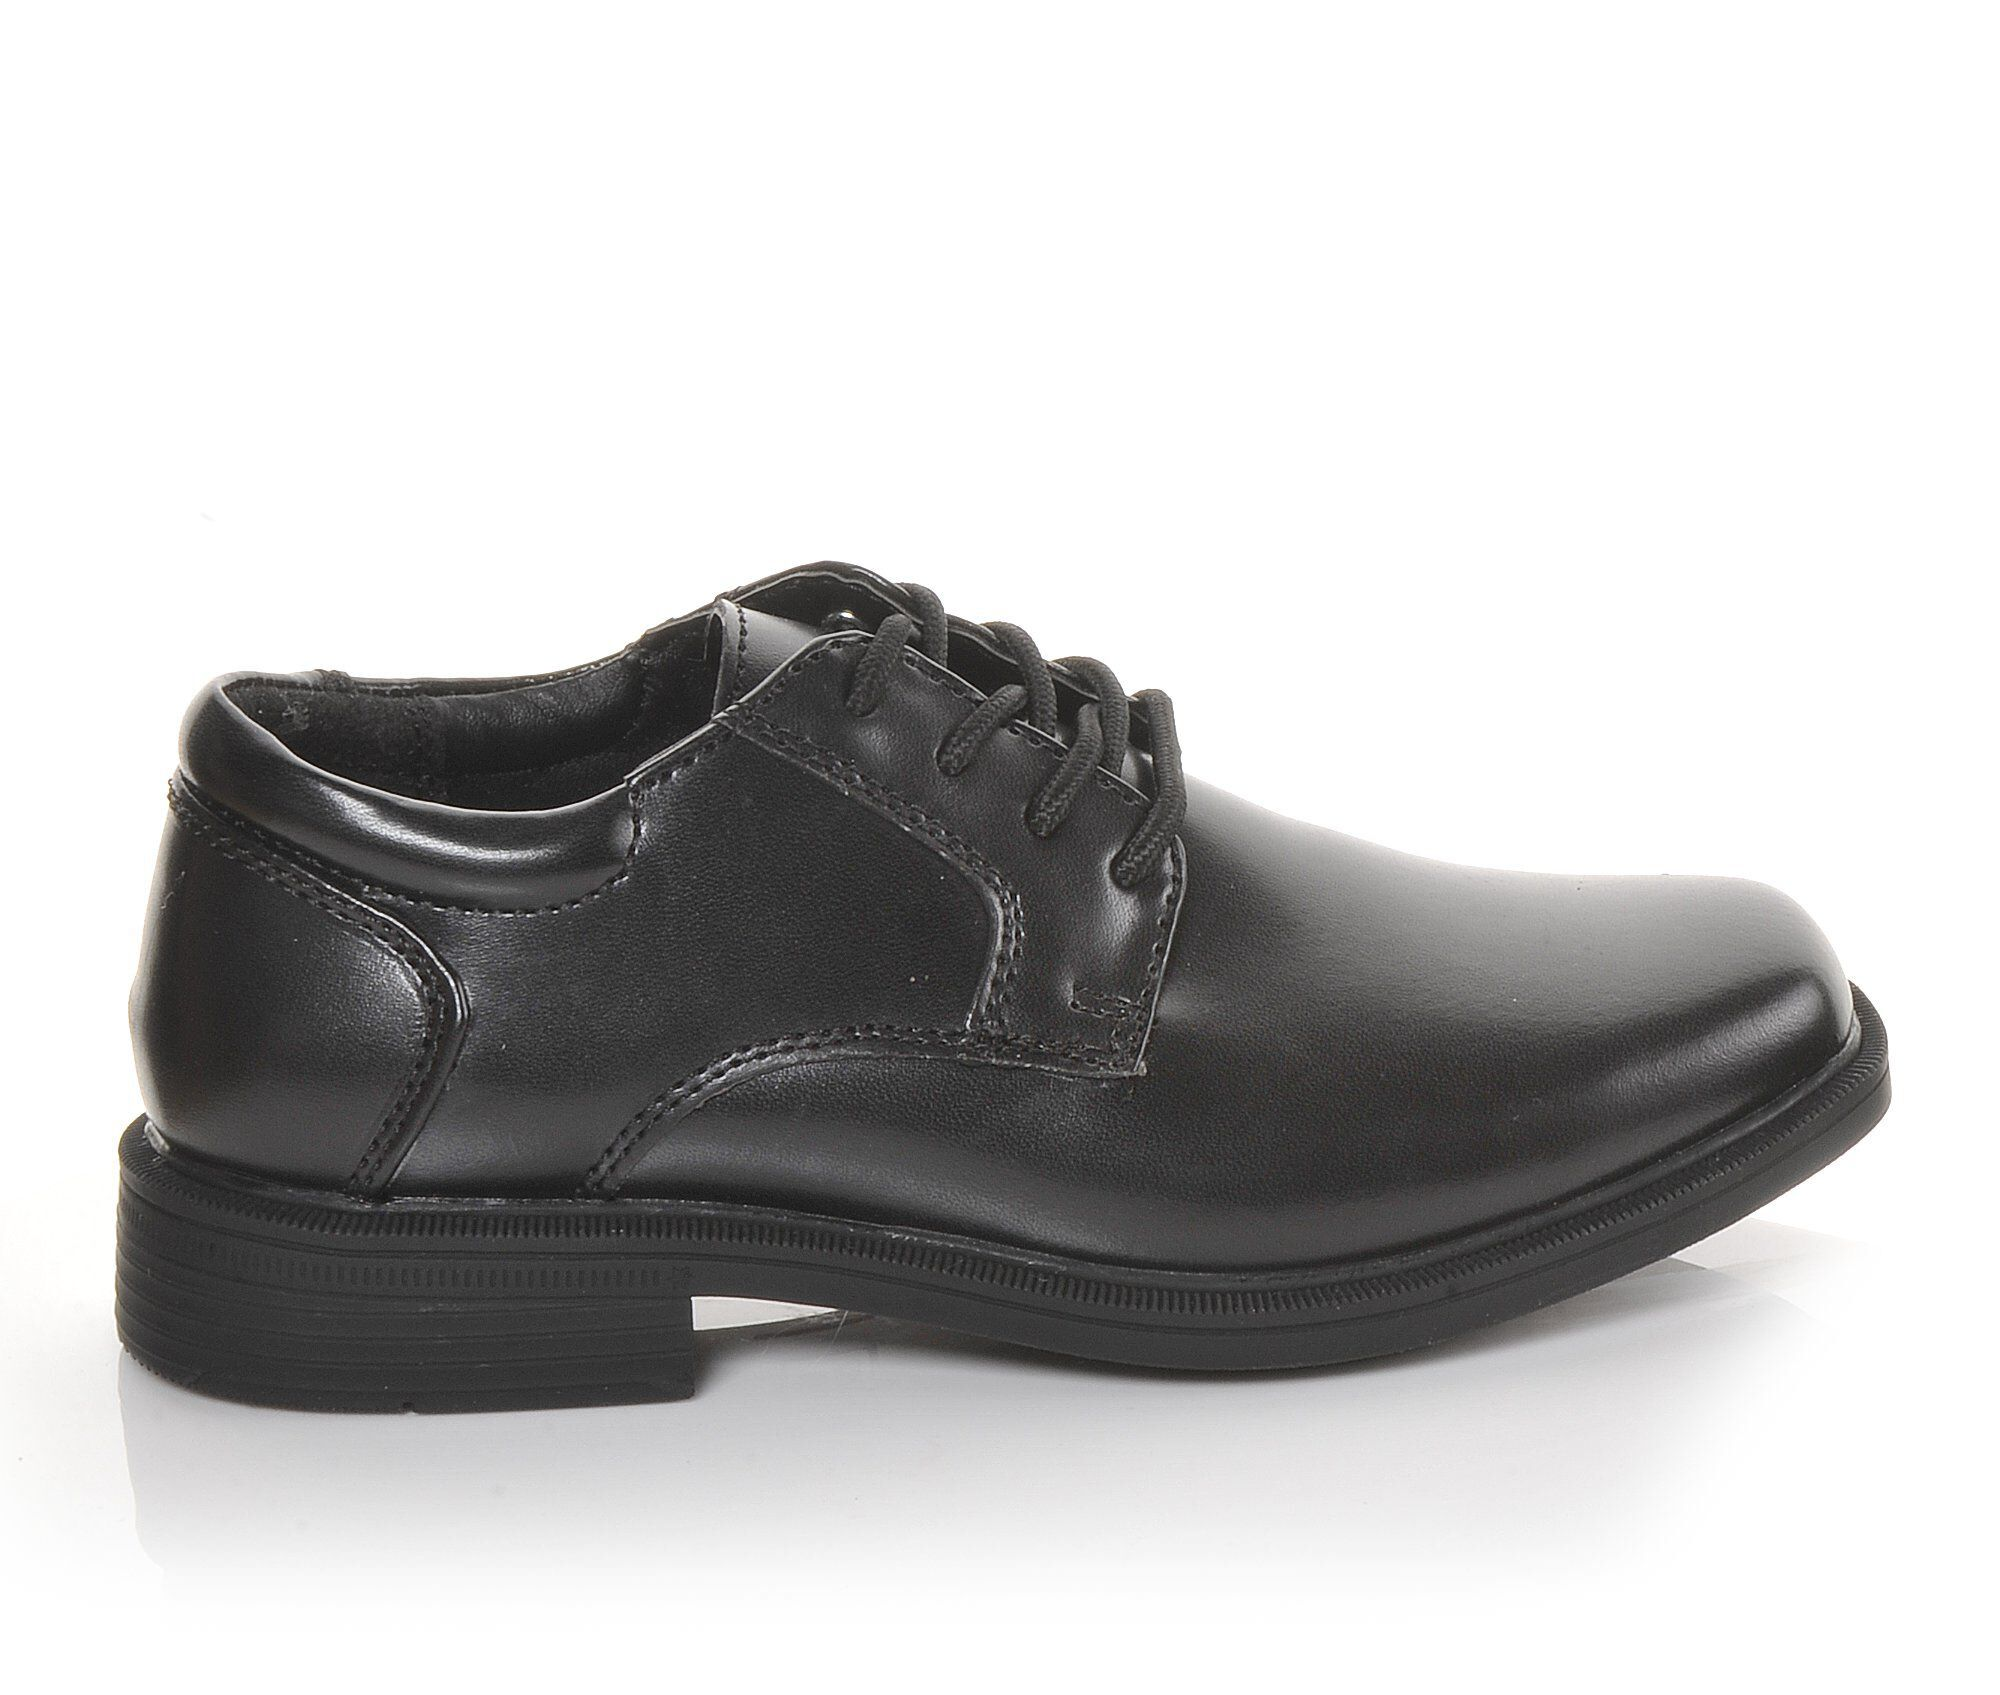 Boys Madison Ave Willie 117 Dress Shoes